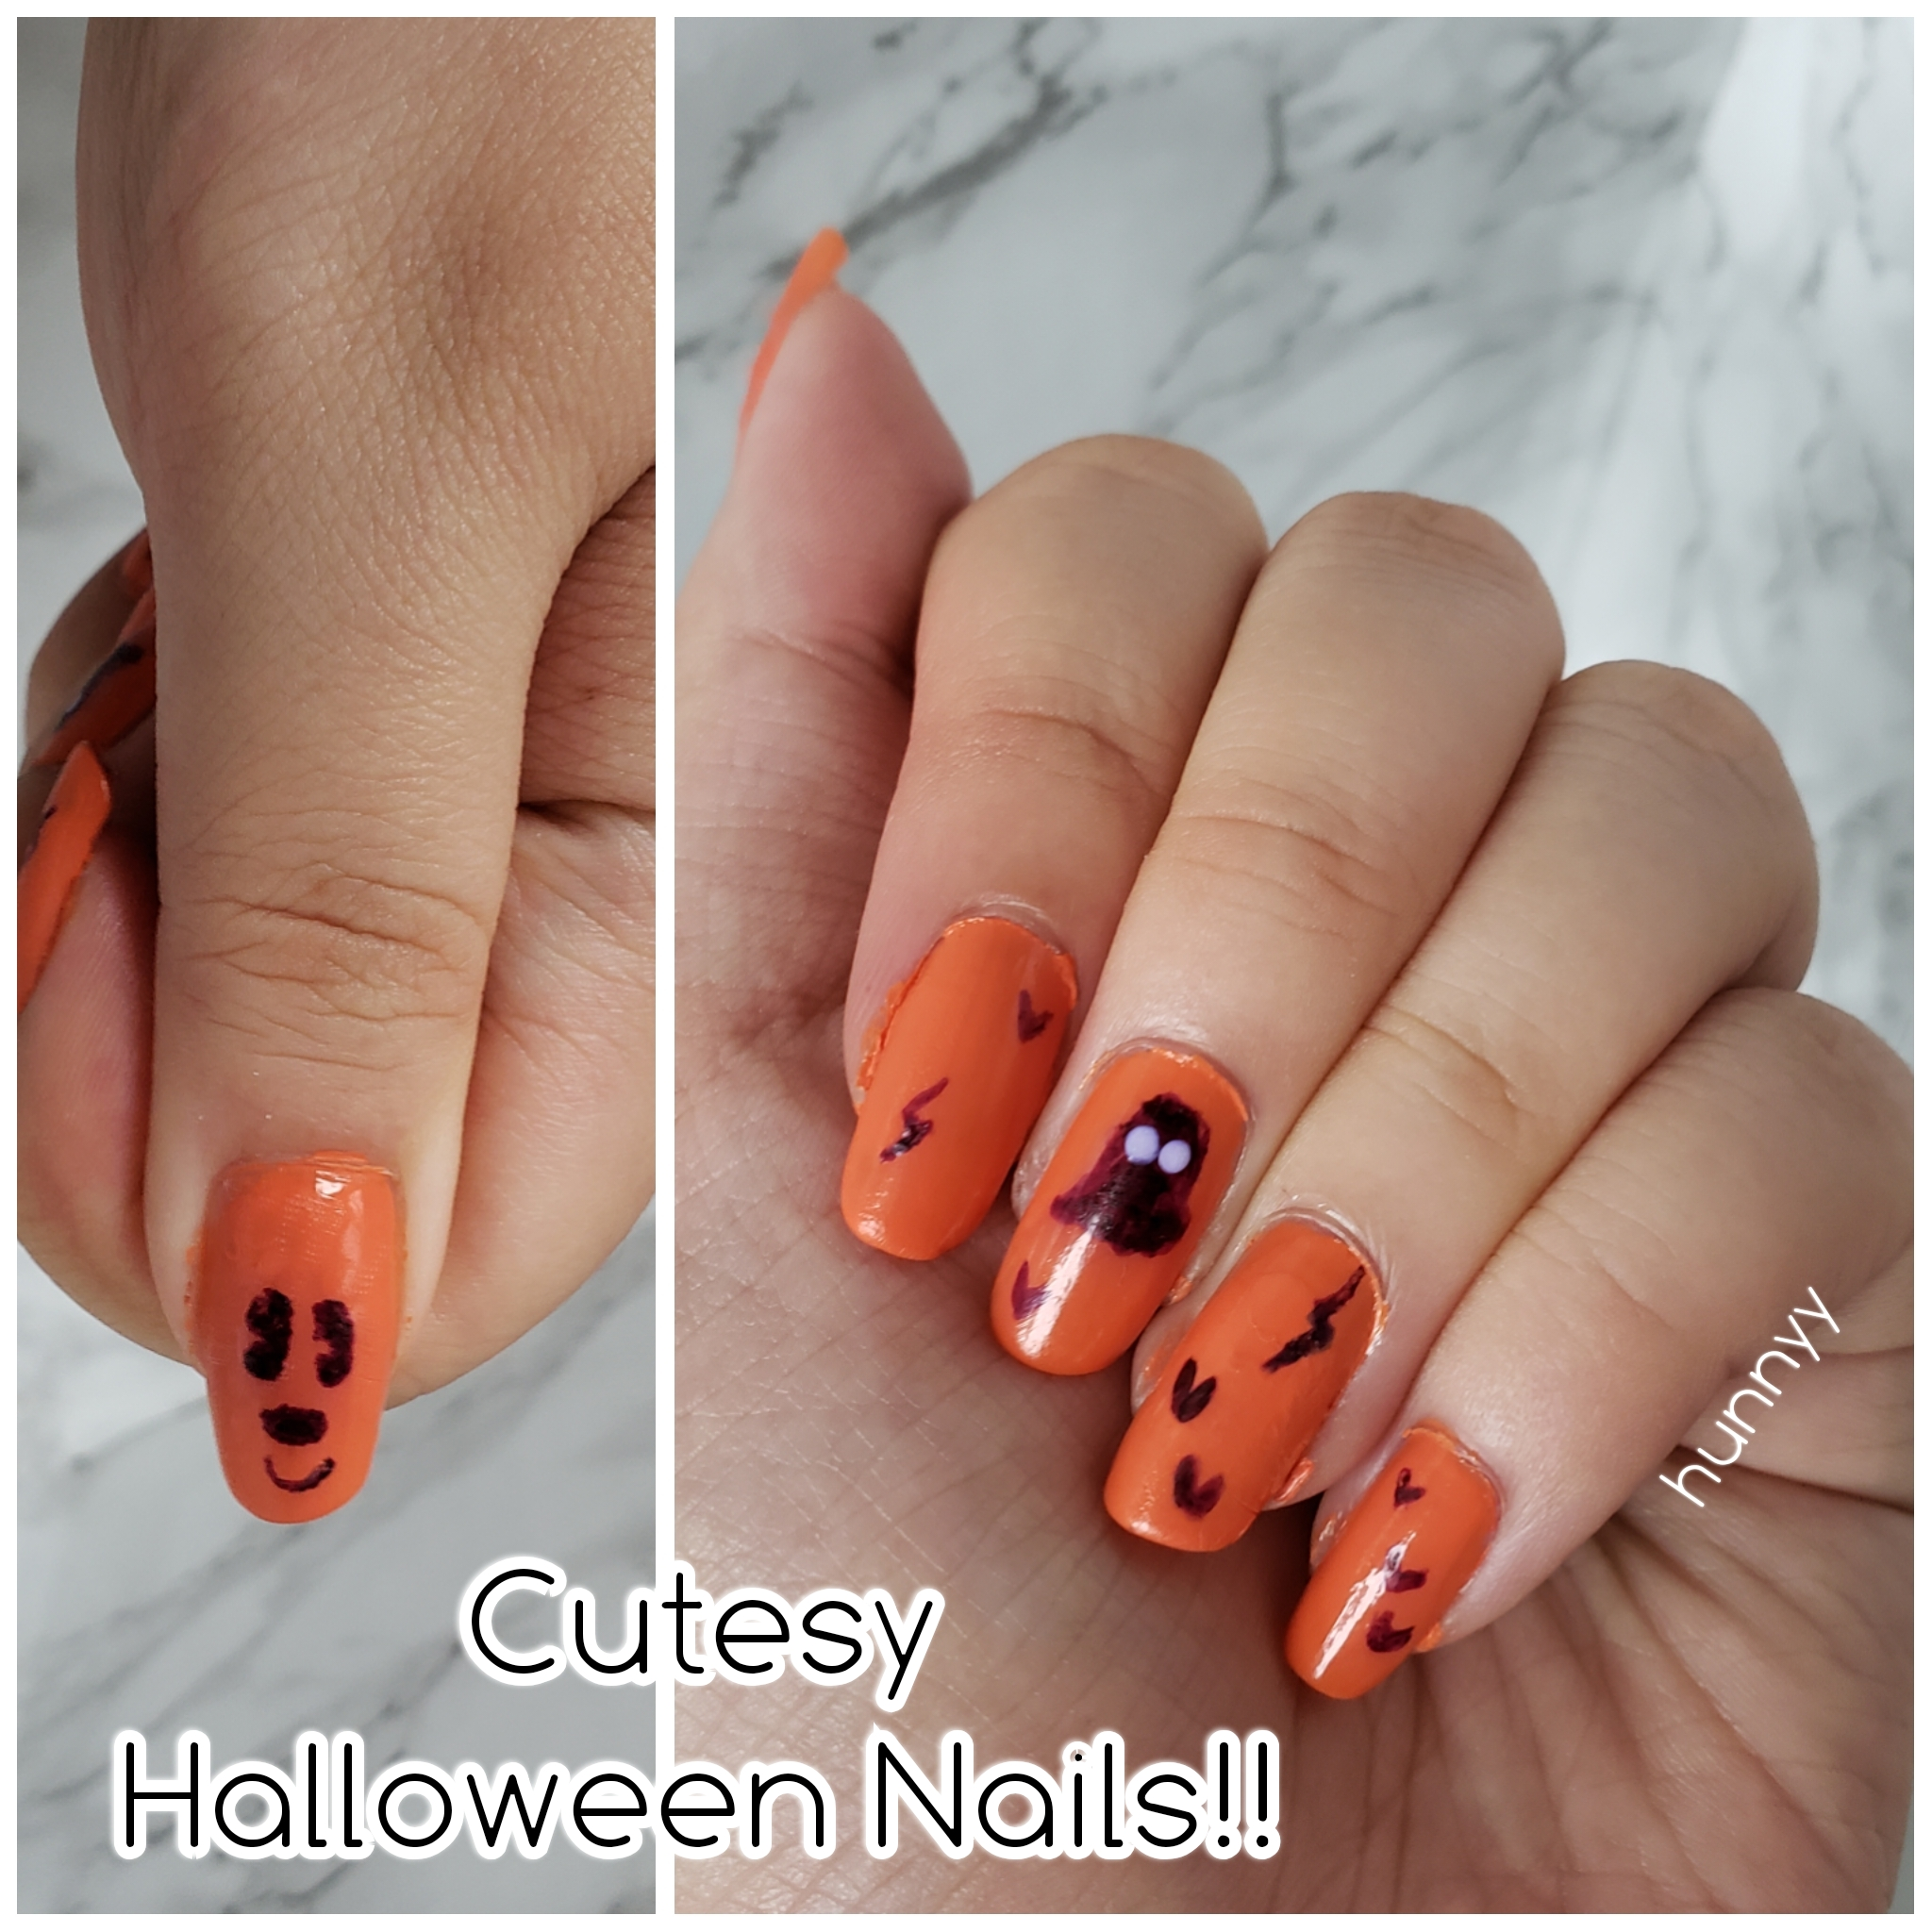 ::Hunnyy:: Quick & Cute Halloween Nails!